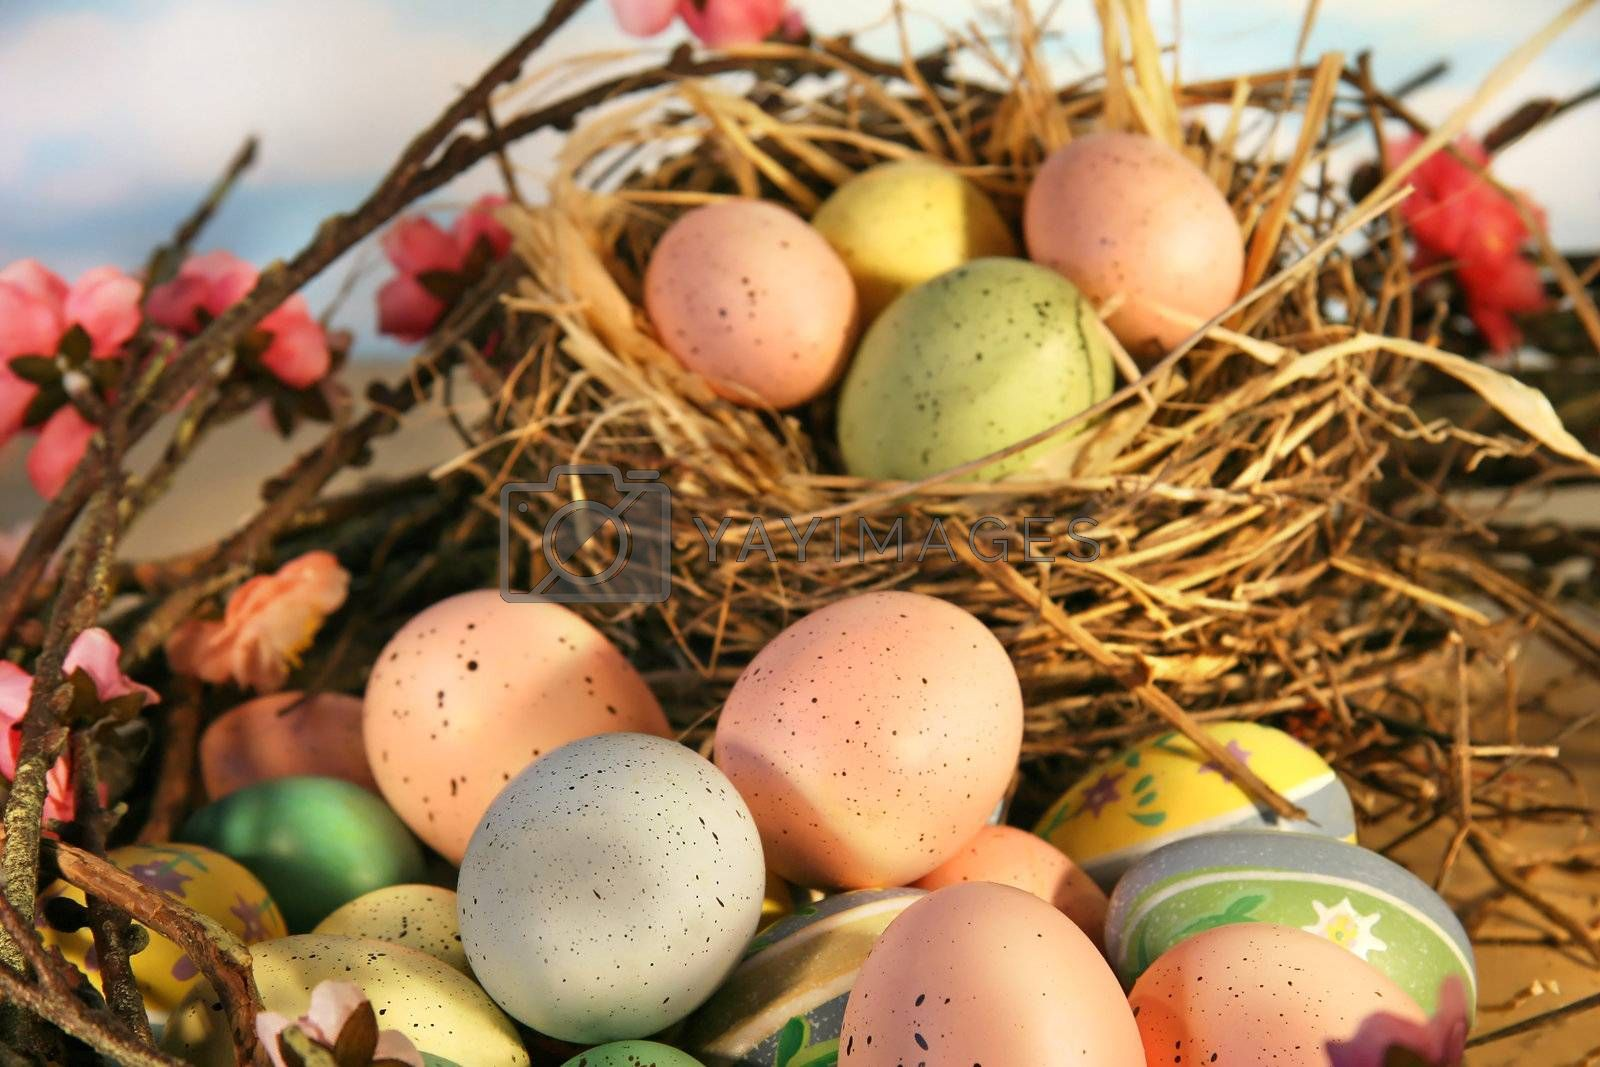 Easter eggs and nest surrounded by apple blossoms